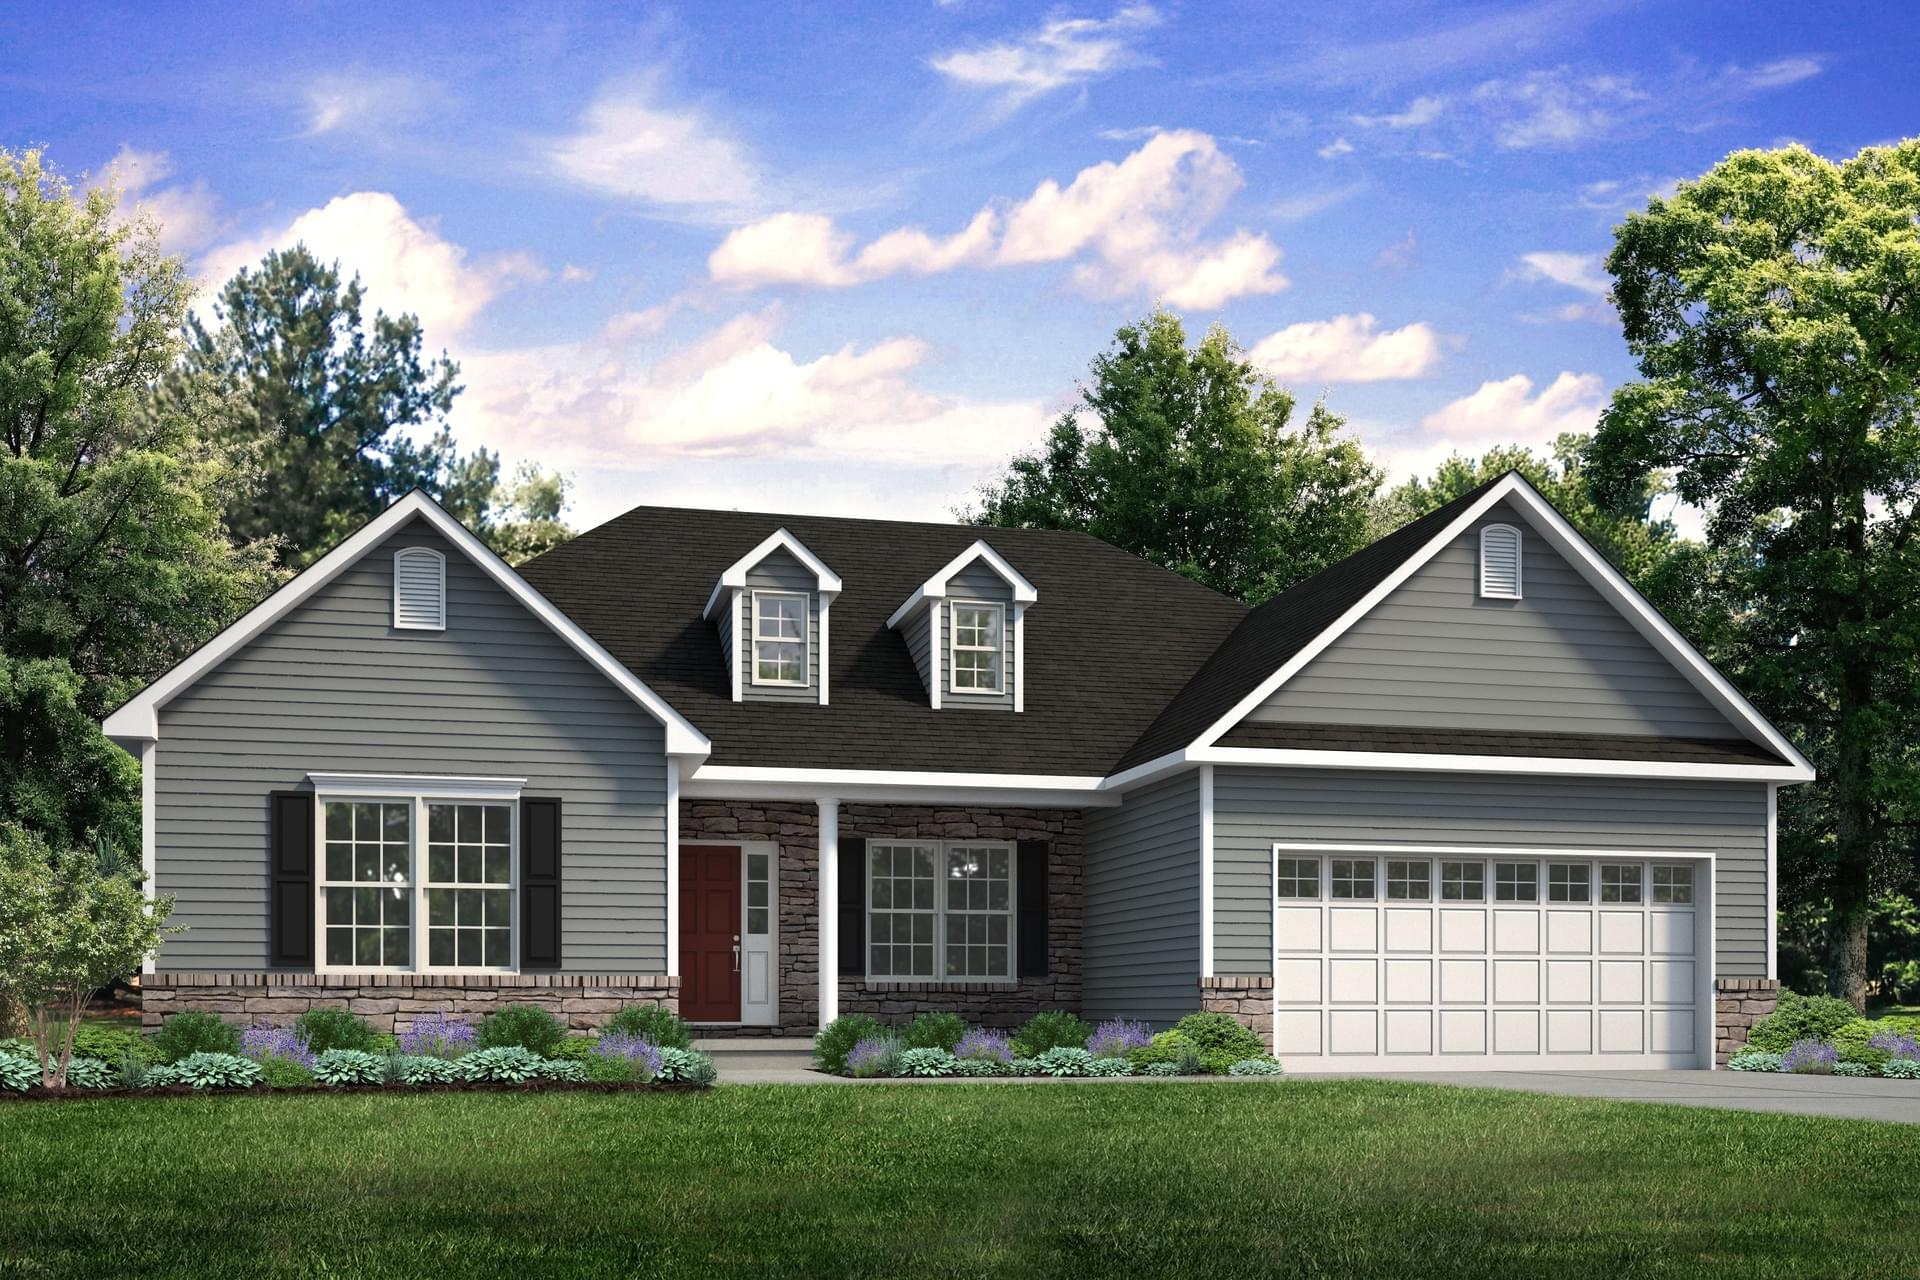 The Woodbury New Home in Easton PA - Northwood Farms